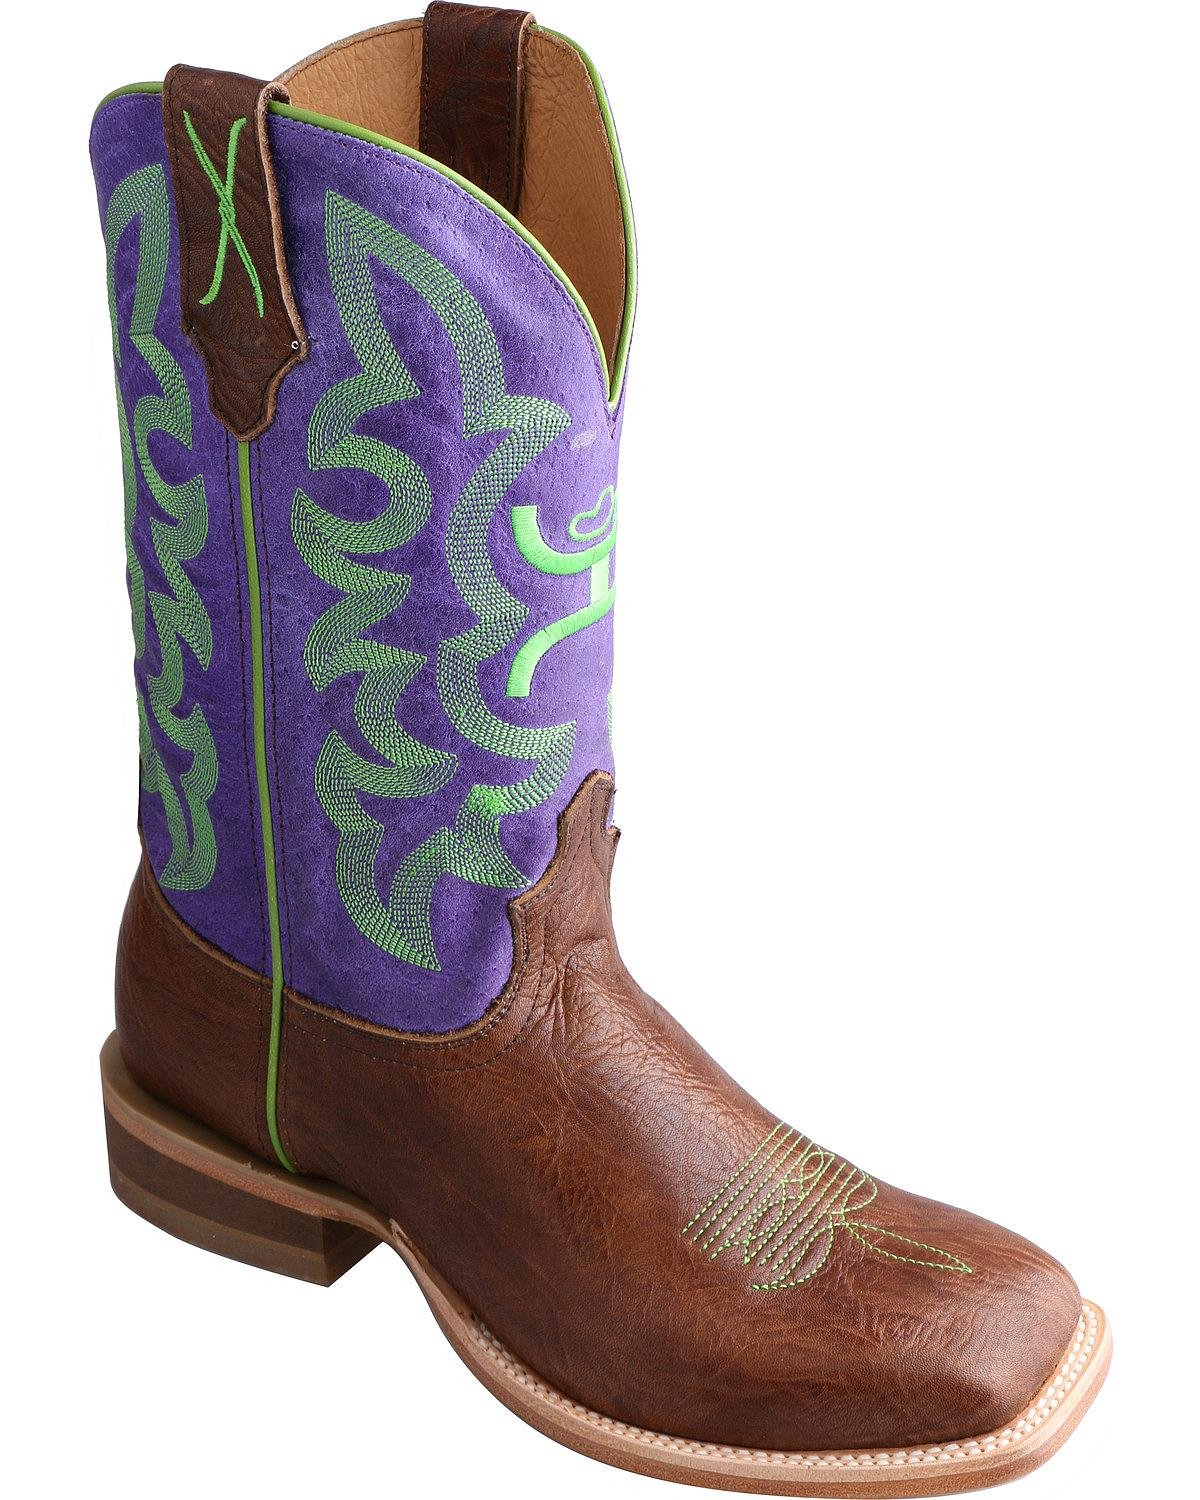 Twisted X Women's Hooey Purple Cowgirl Boot Square Toe - Why0005 B014K2TZ36 7.5 B(M) US|Brown